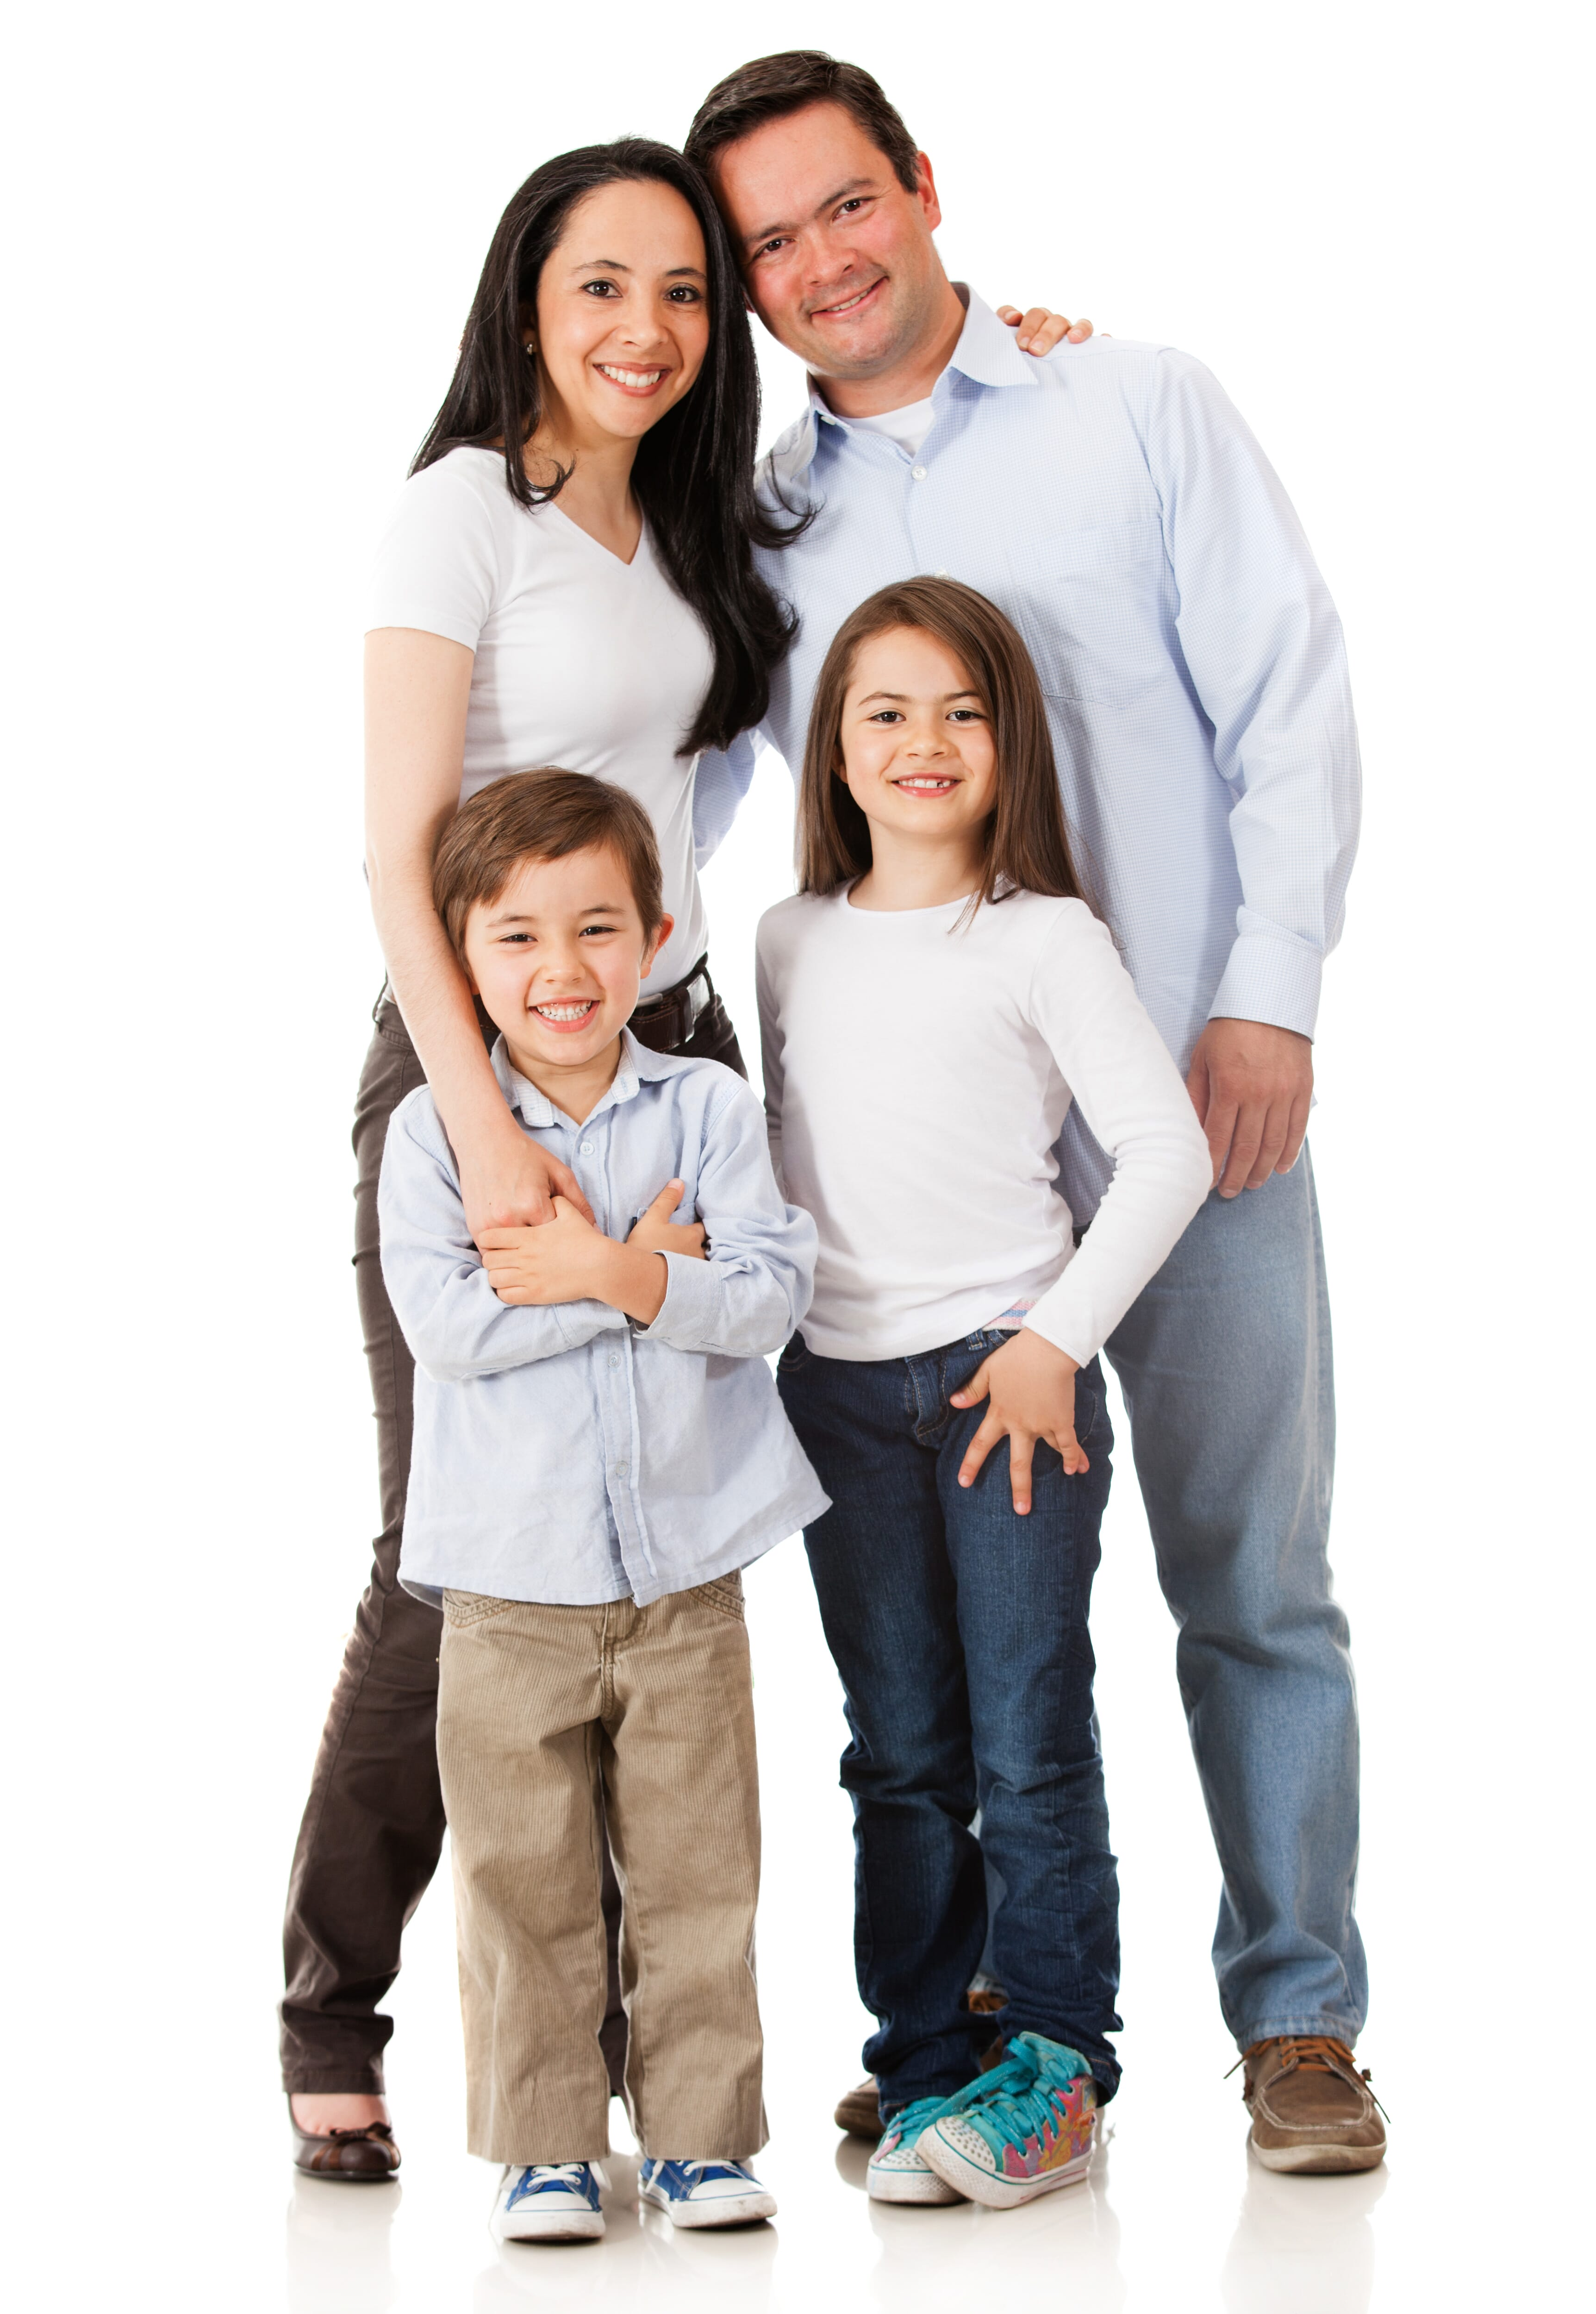 R&A Solicitors are experienced in all aspects of Family Law, including Divorce, Separation and pre-nuptial agreements